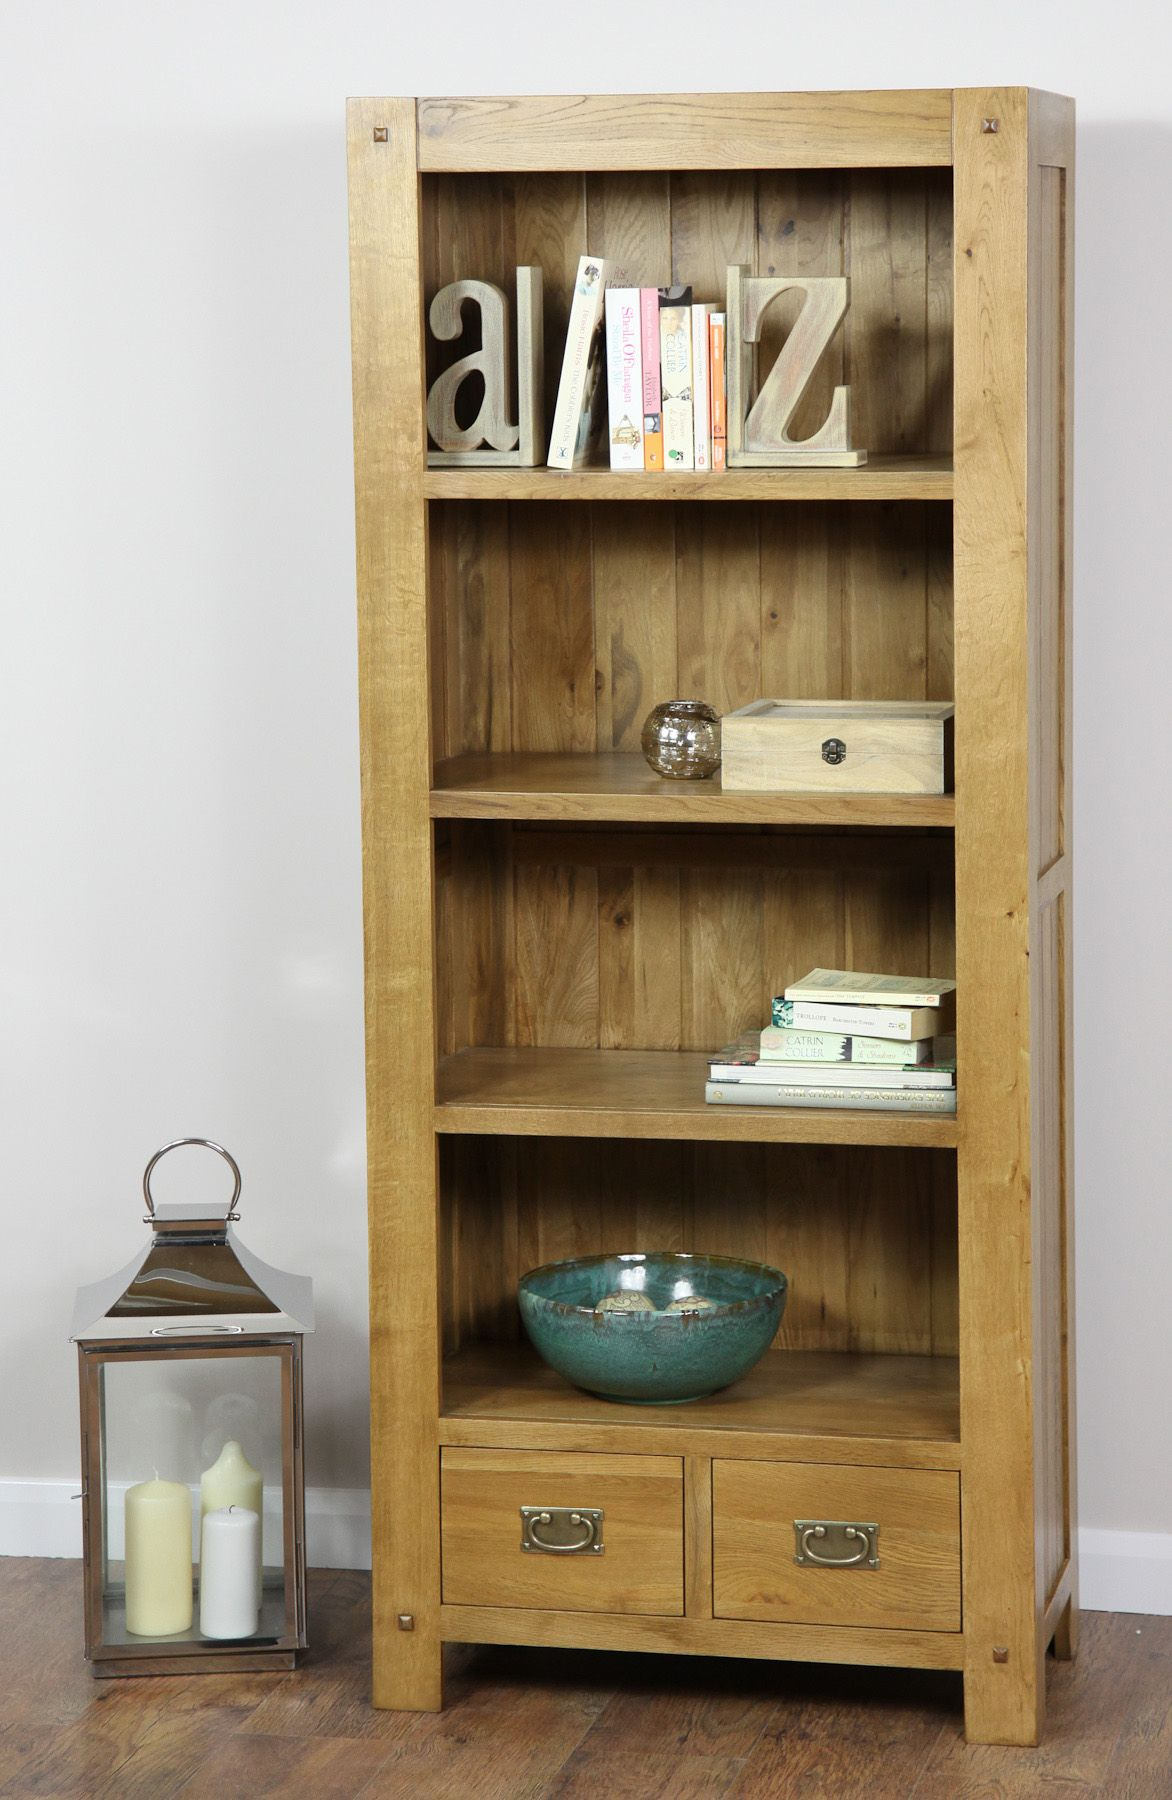 Quercus Solid Oak Furniture Range Oak Cabinet Oak Tall Bookcase Oak Furniture Land Www Oakfurniturelan With Images Solid Oak Furniture Rustic Oak Furniture